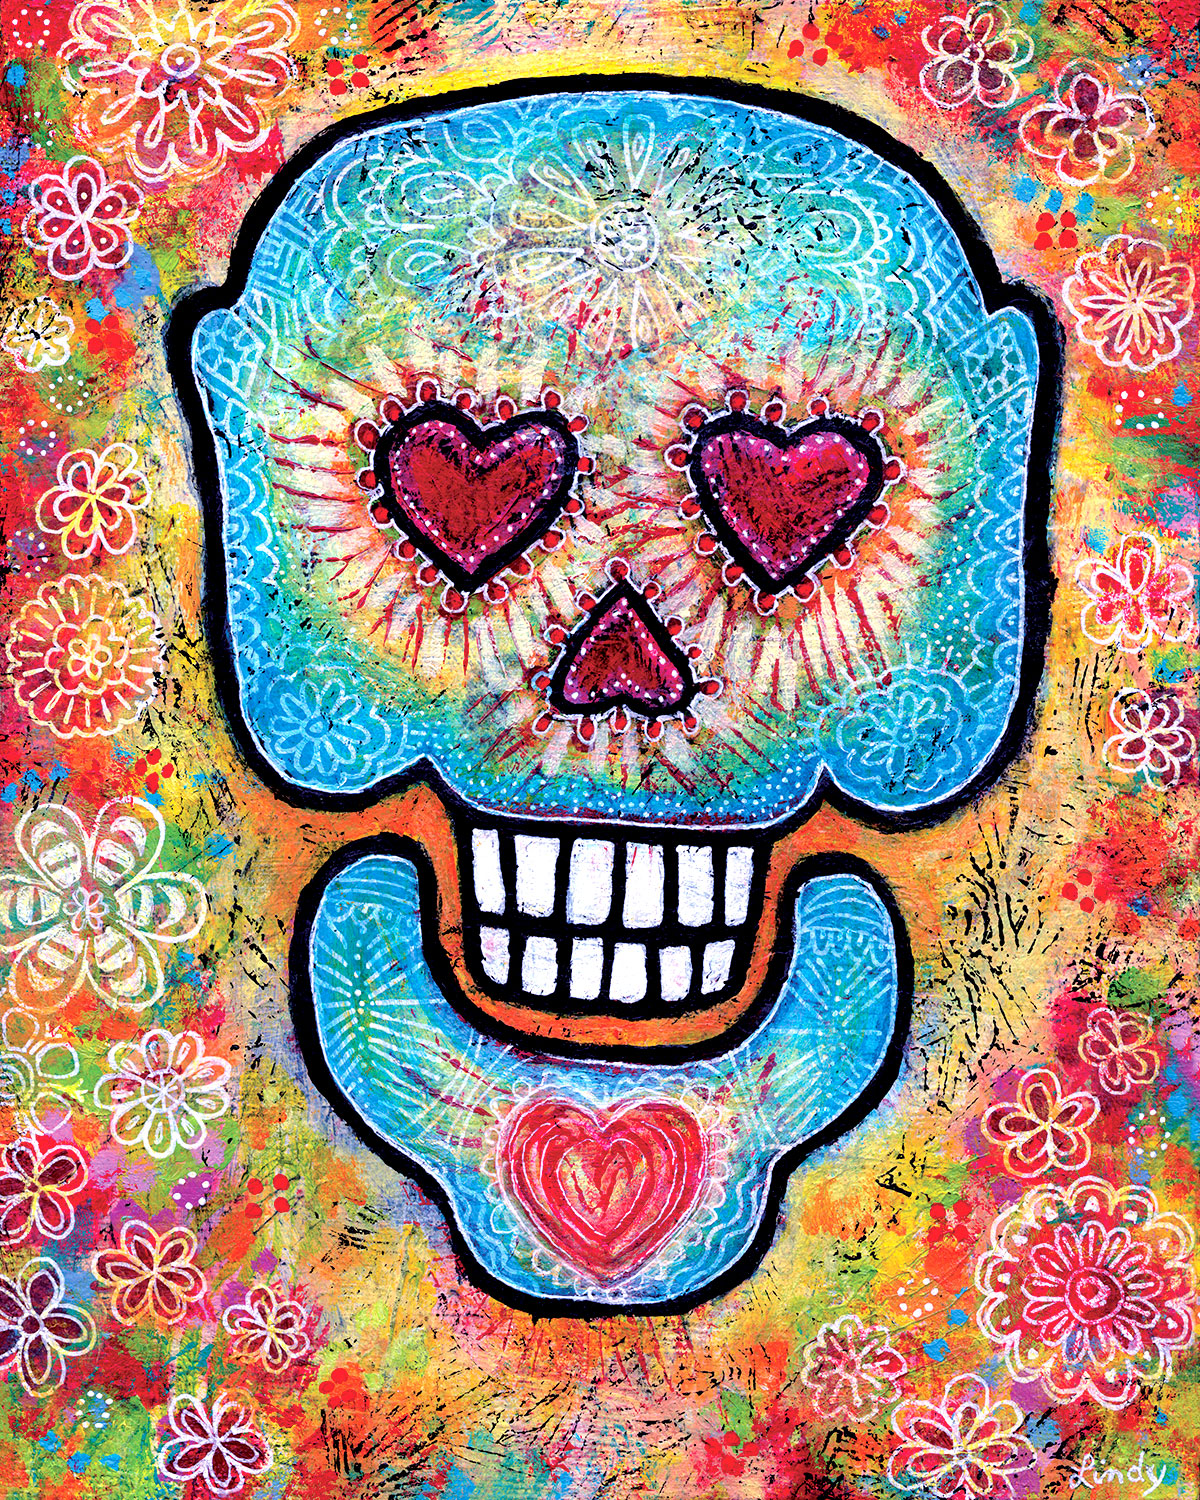 whimsical Sugar Skull painting by Lindy Gaskill